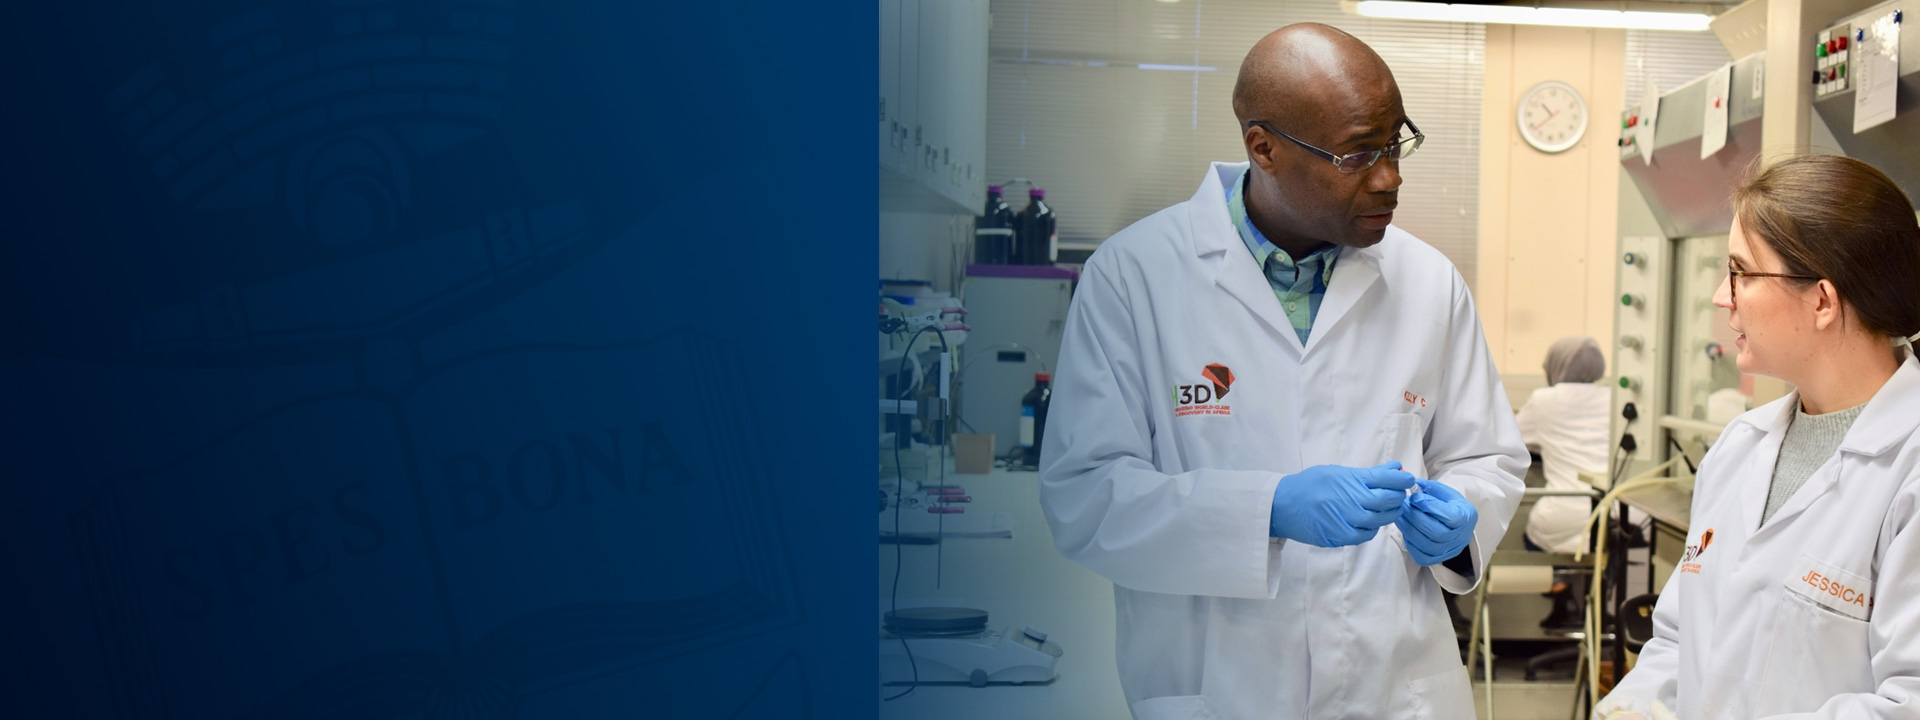 Multimillion rand boost for Africa medicines research